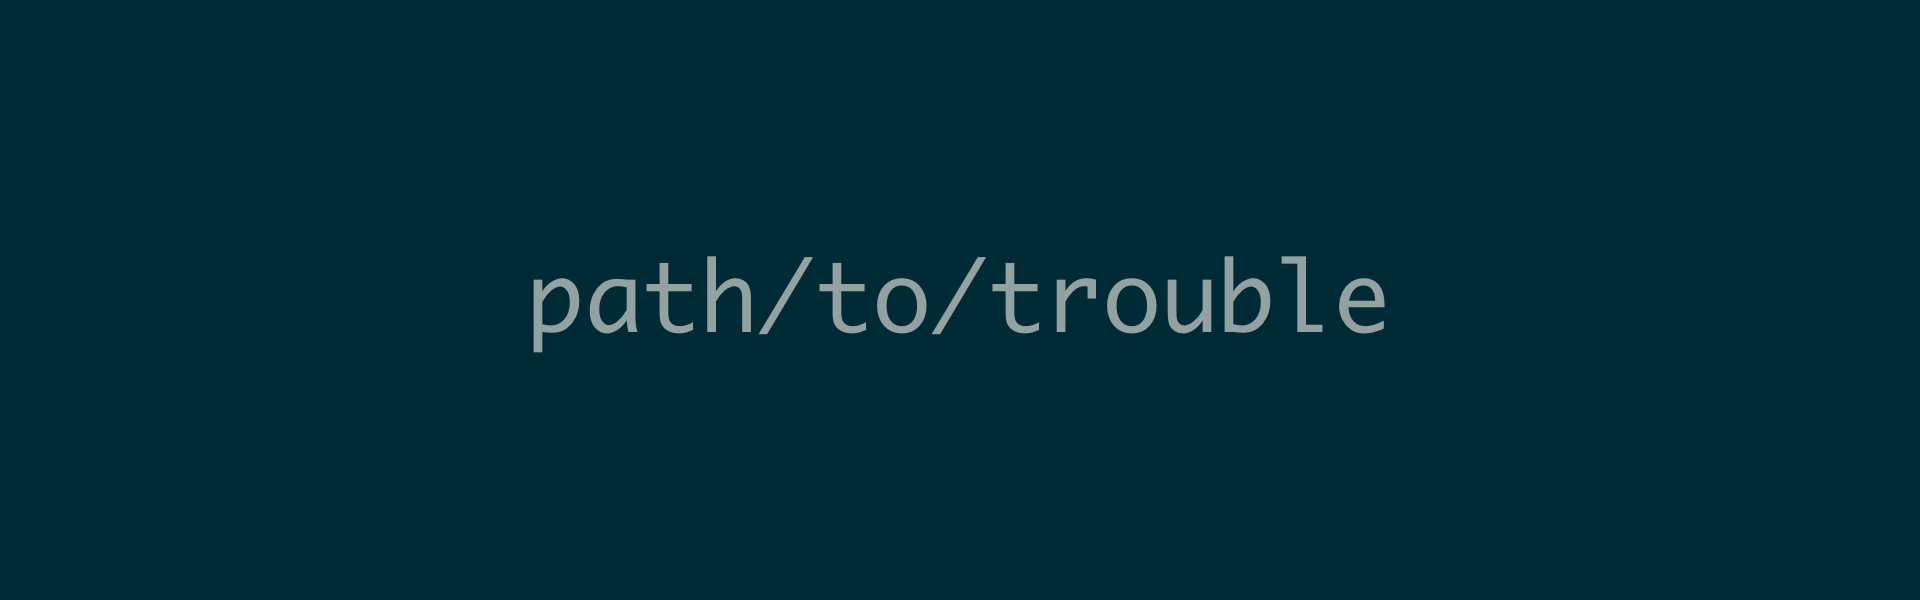 A terminal font with the text path/to/trouble